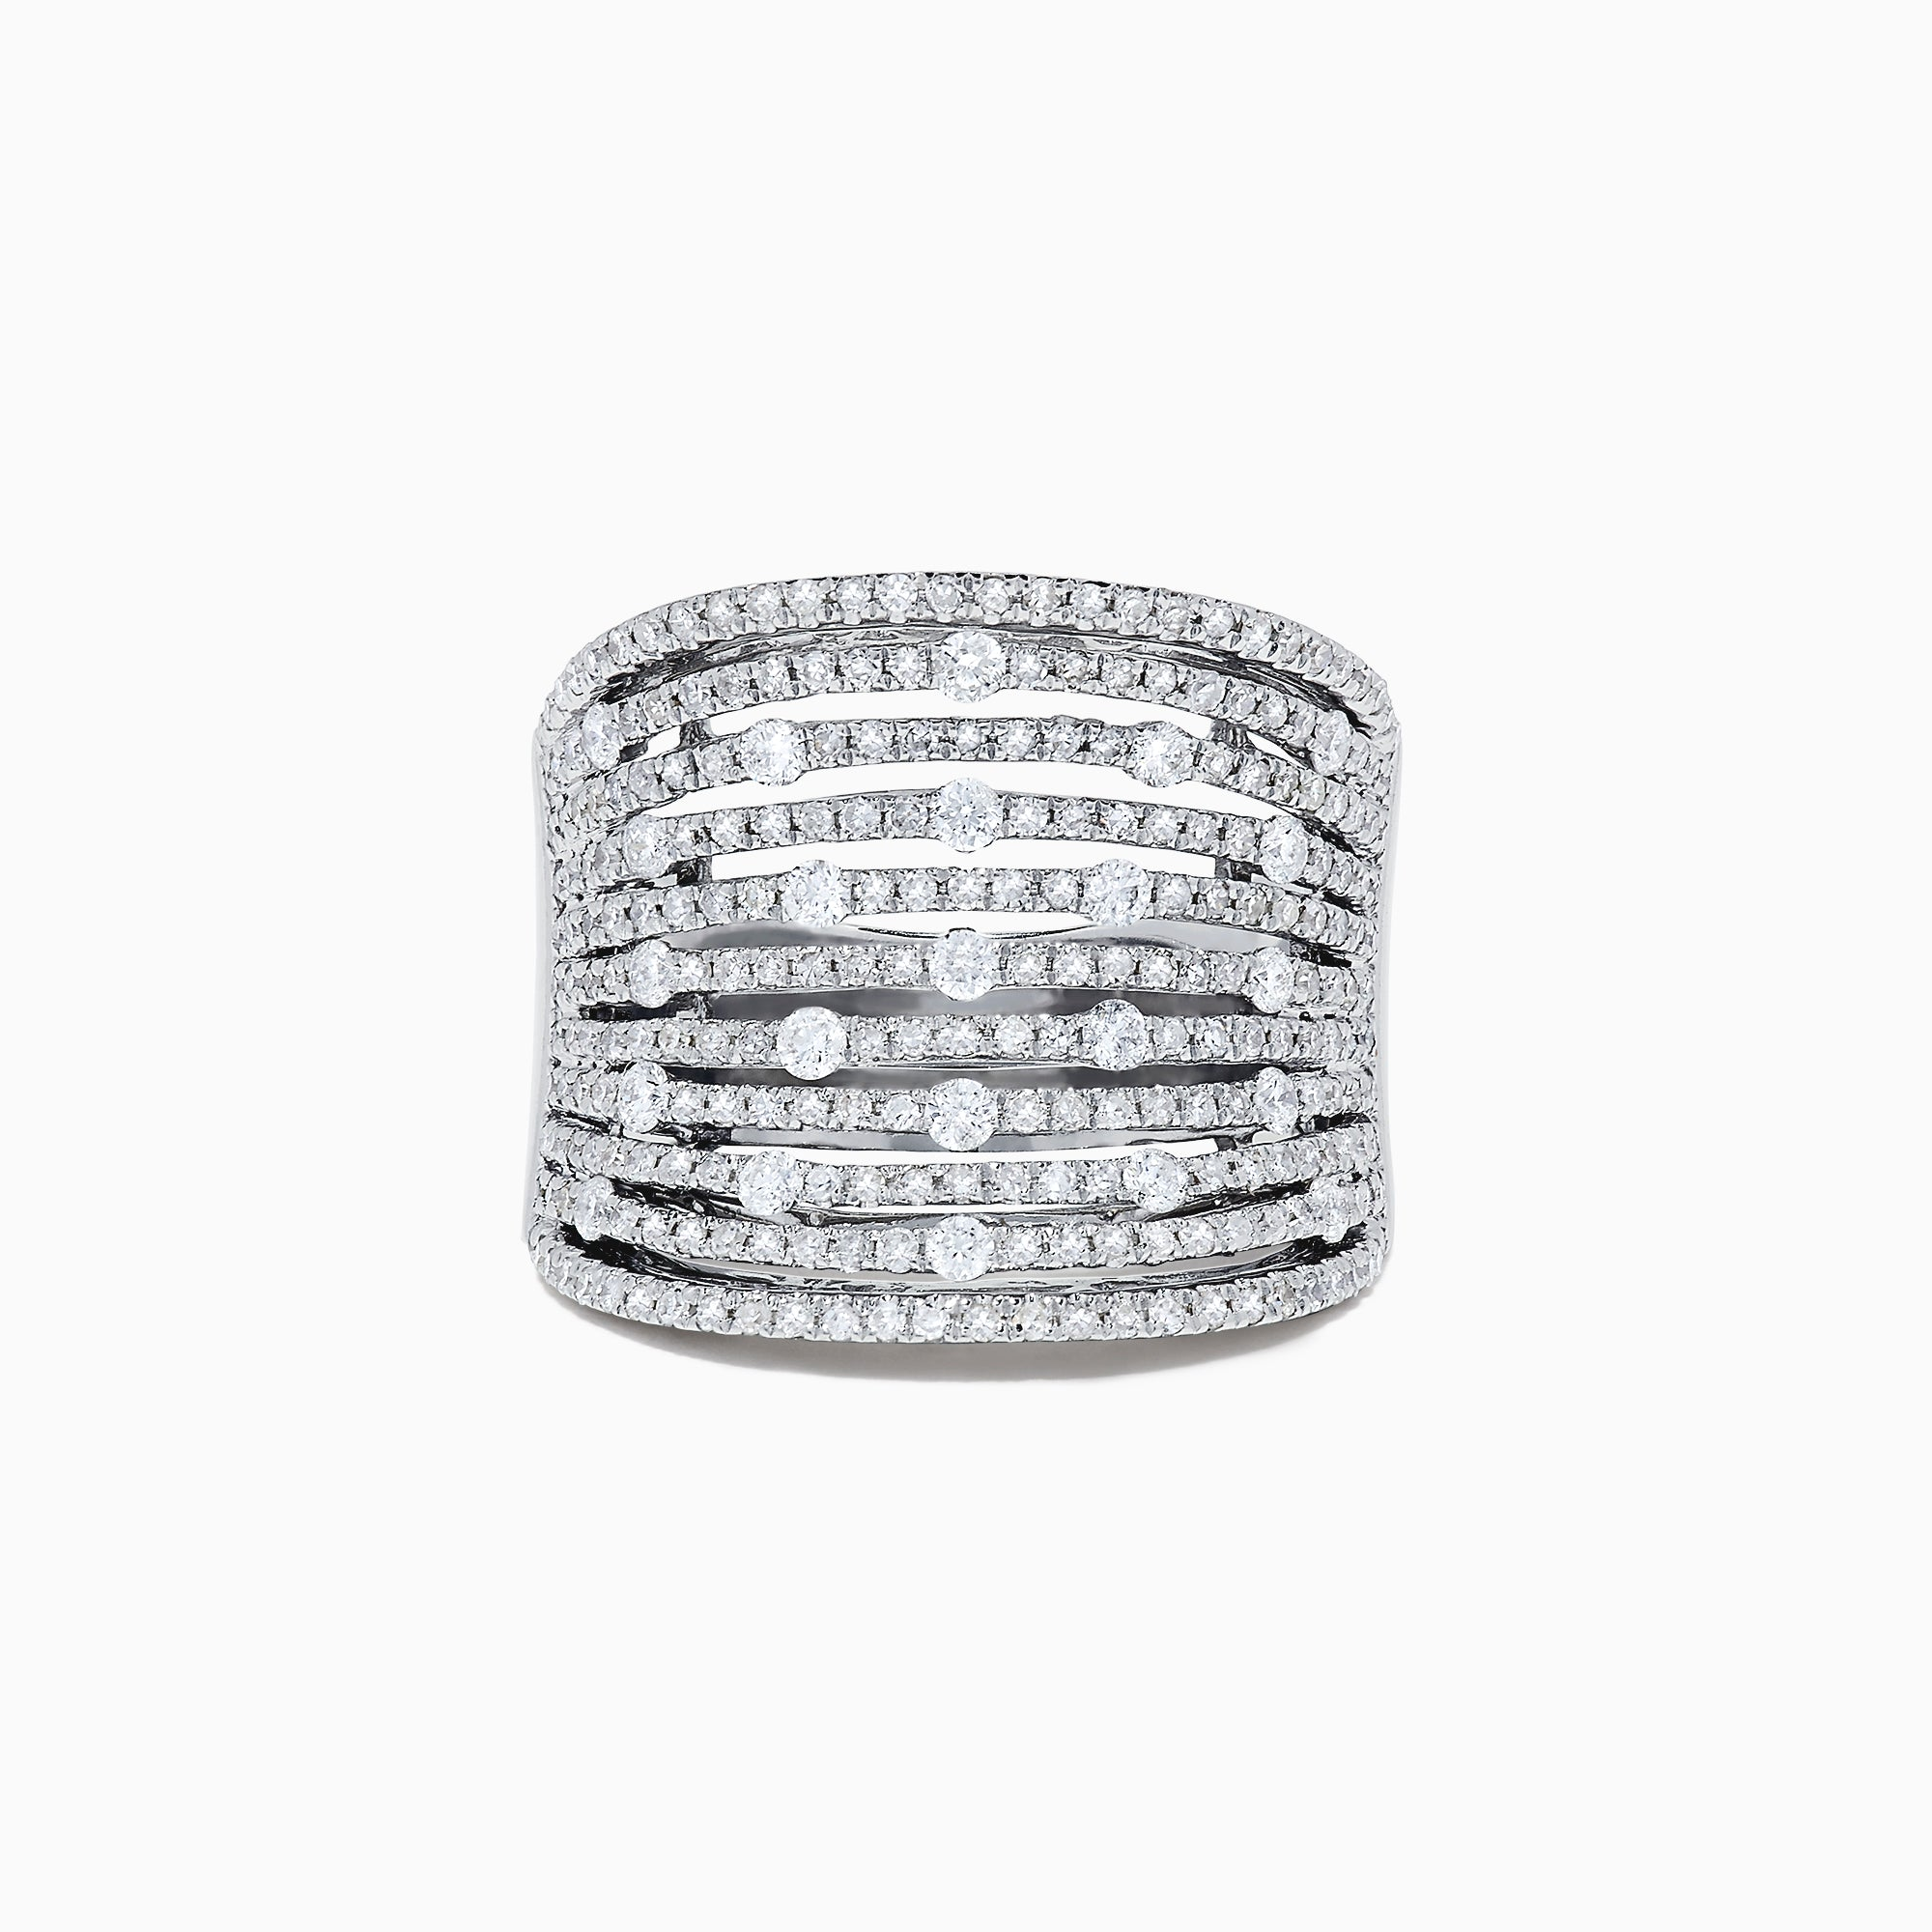 Effy 14K White Gold Diamond Wide Band Ring, 1.34 TCW